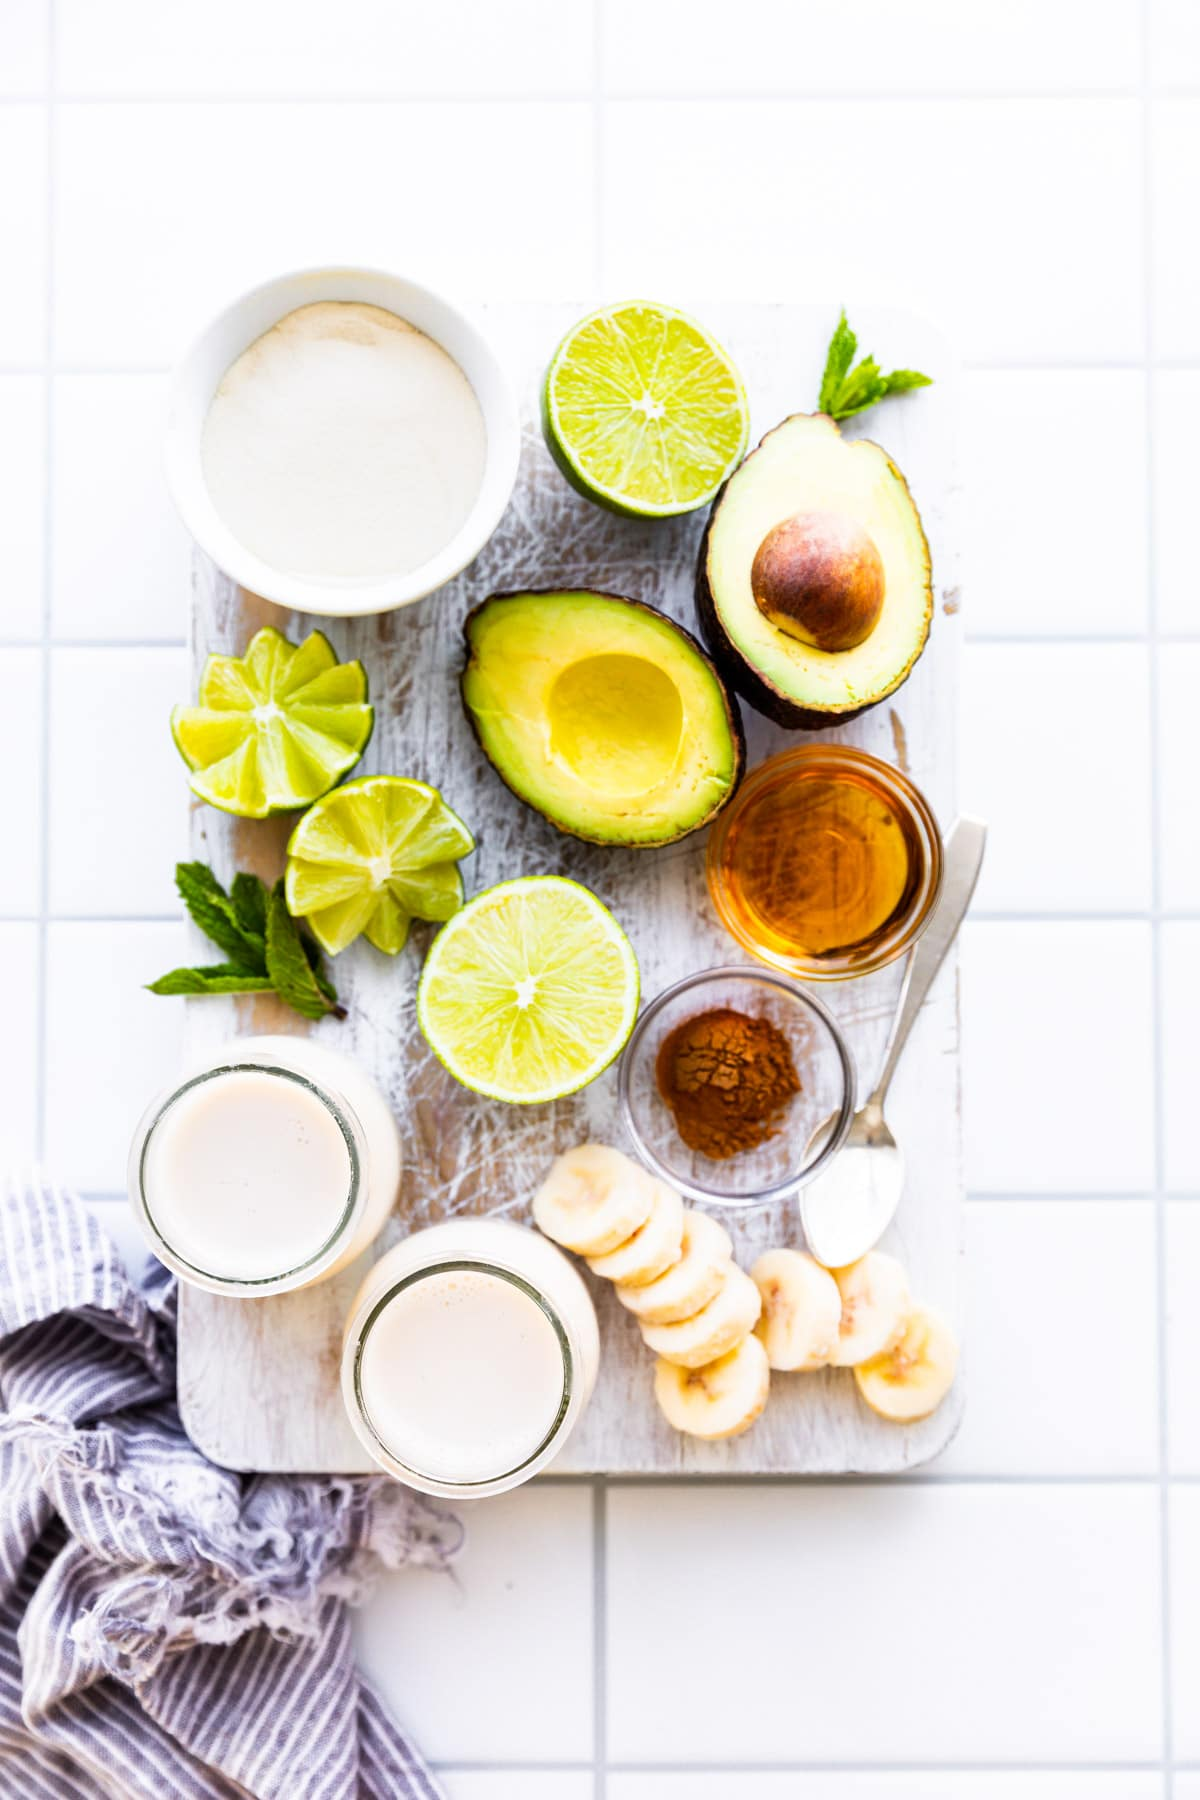 Ingredients on a wood board for dairy free smoothie recipe. Avocado, milk, protein, banana, lime, cinnamon